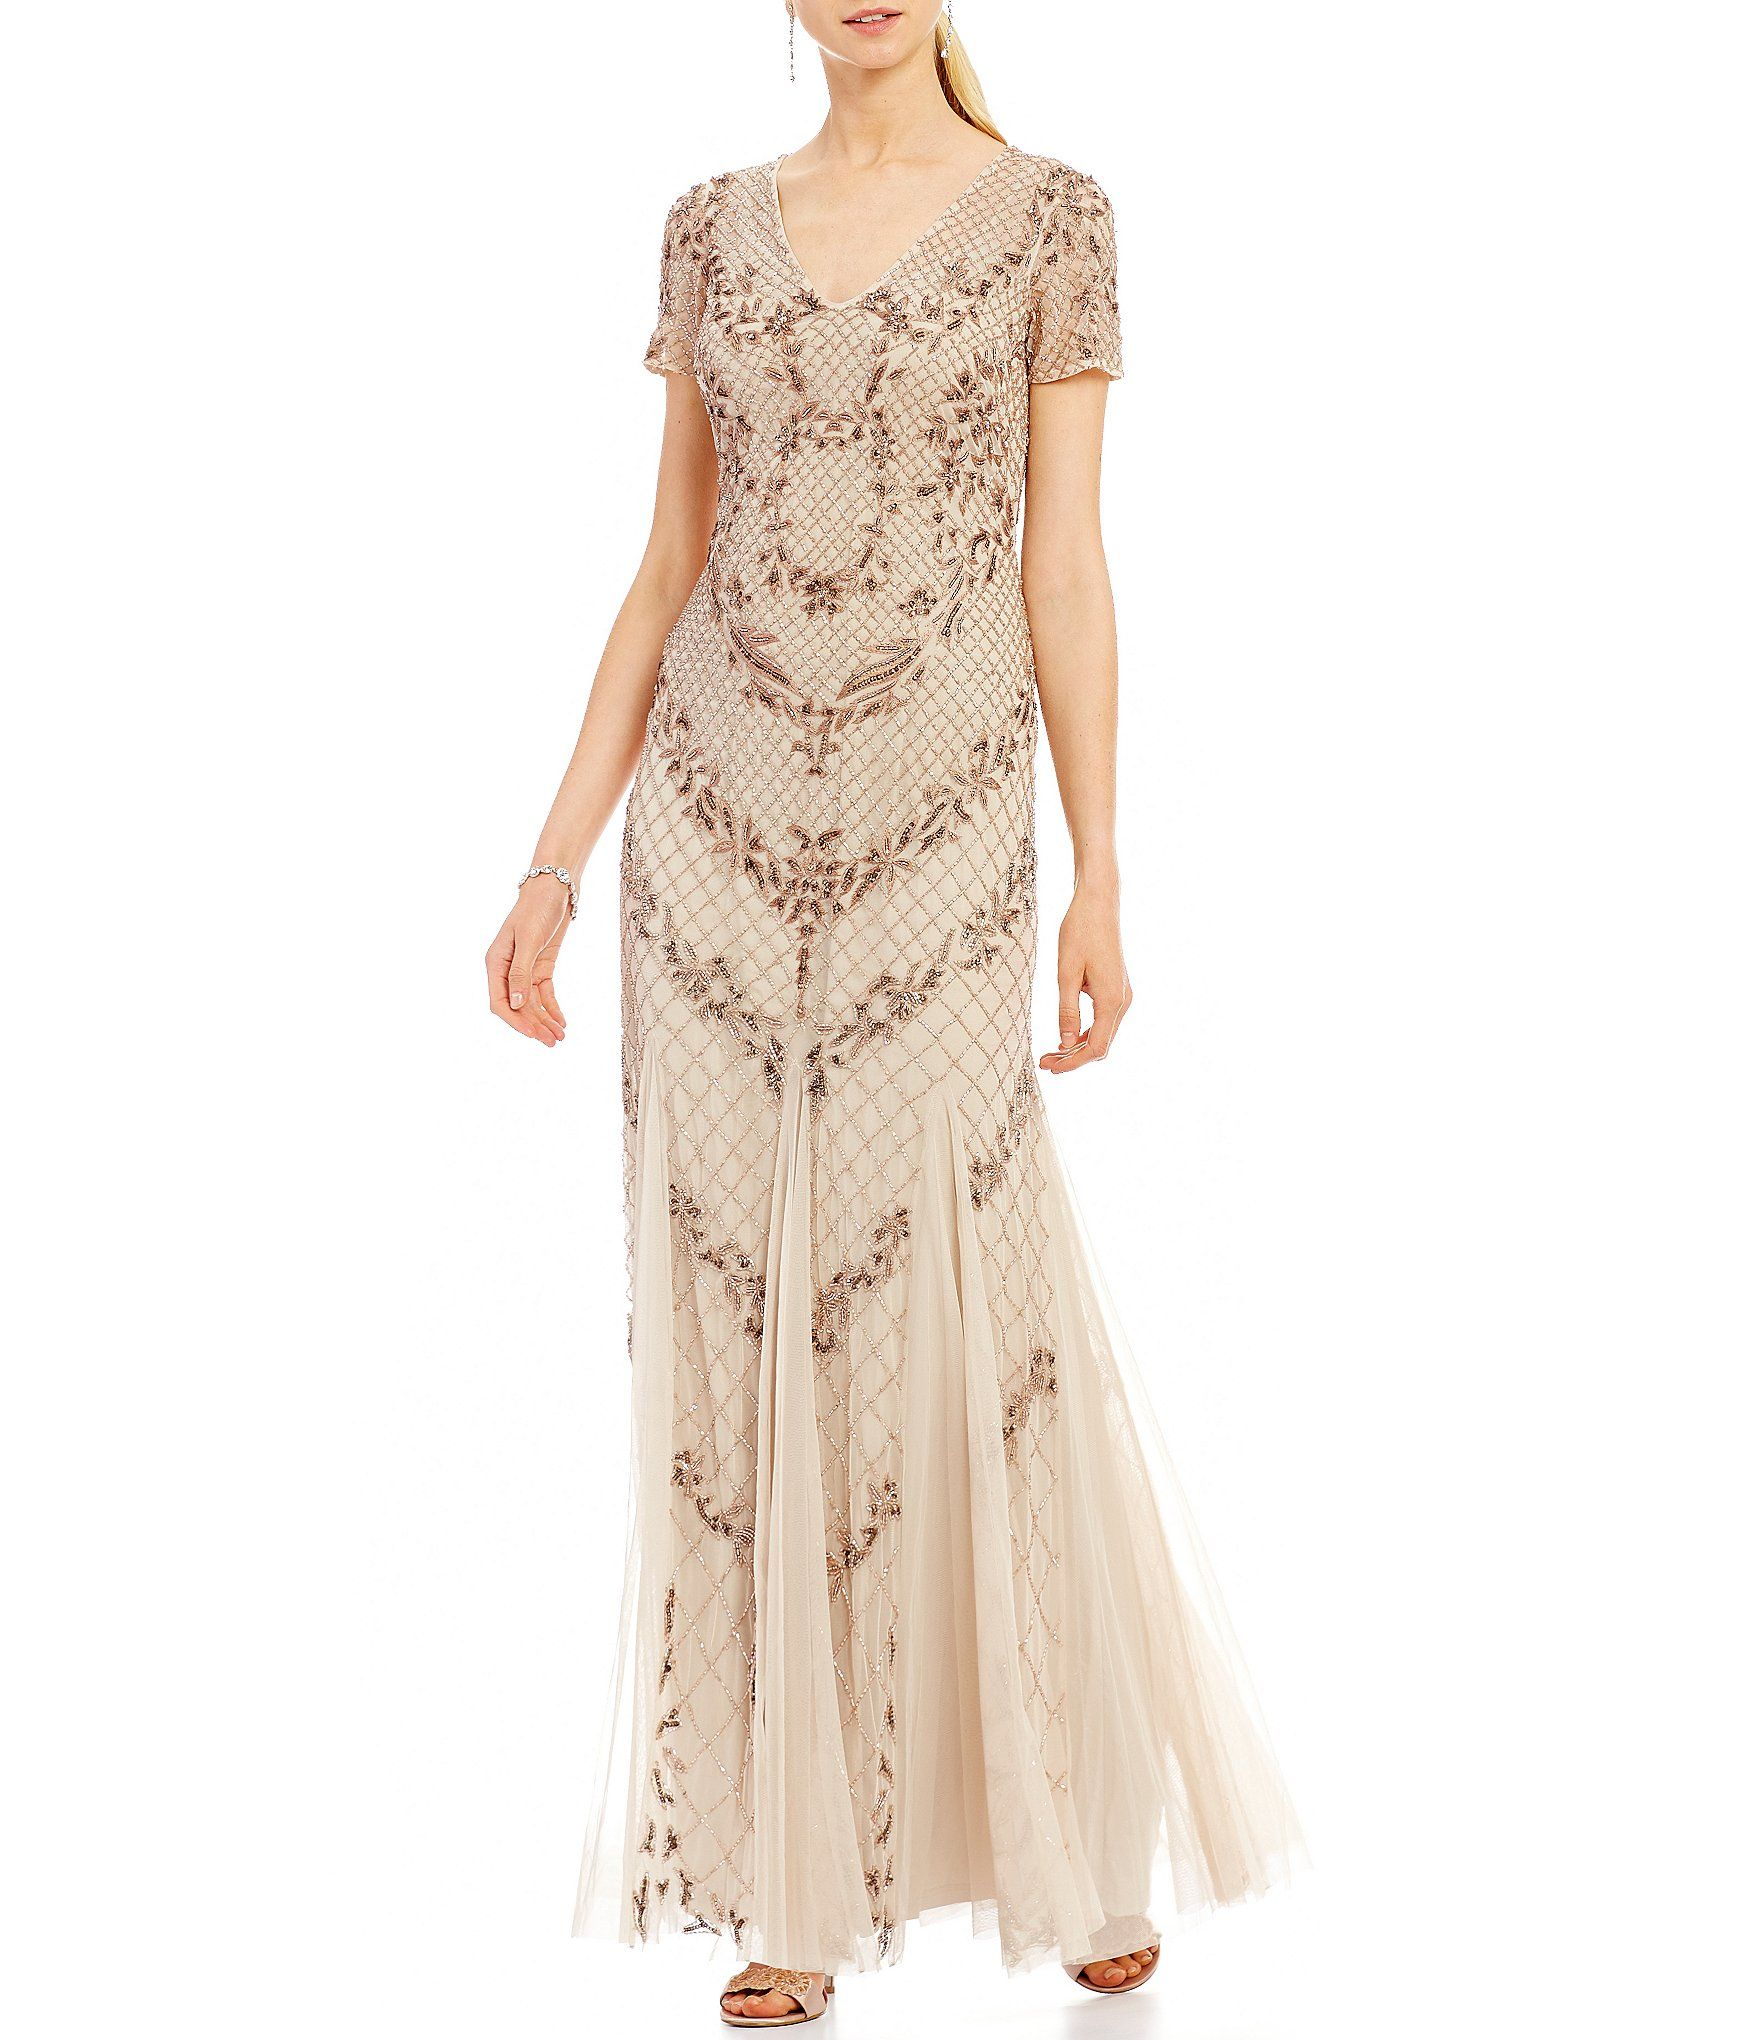 Adrianna Papell Beaded Mermaid Gown | Mermaid gown, Adrianna papell ...